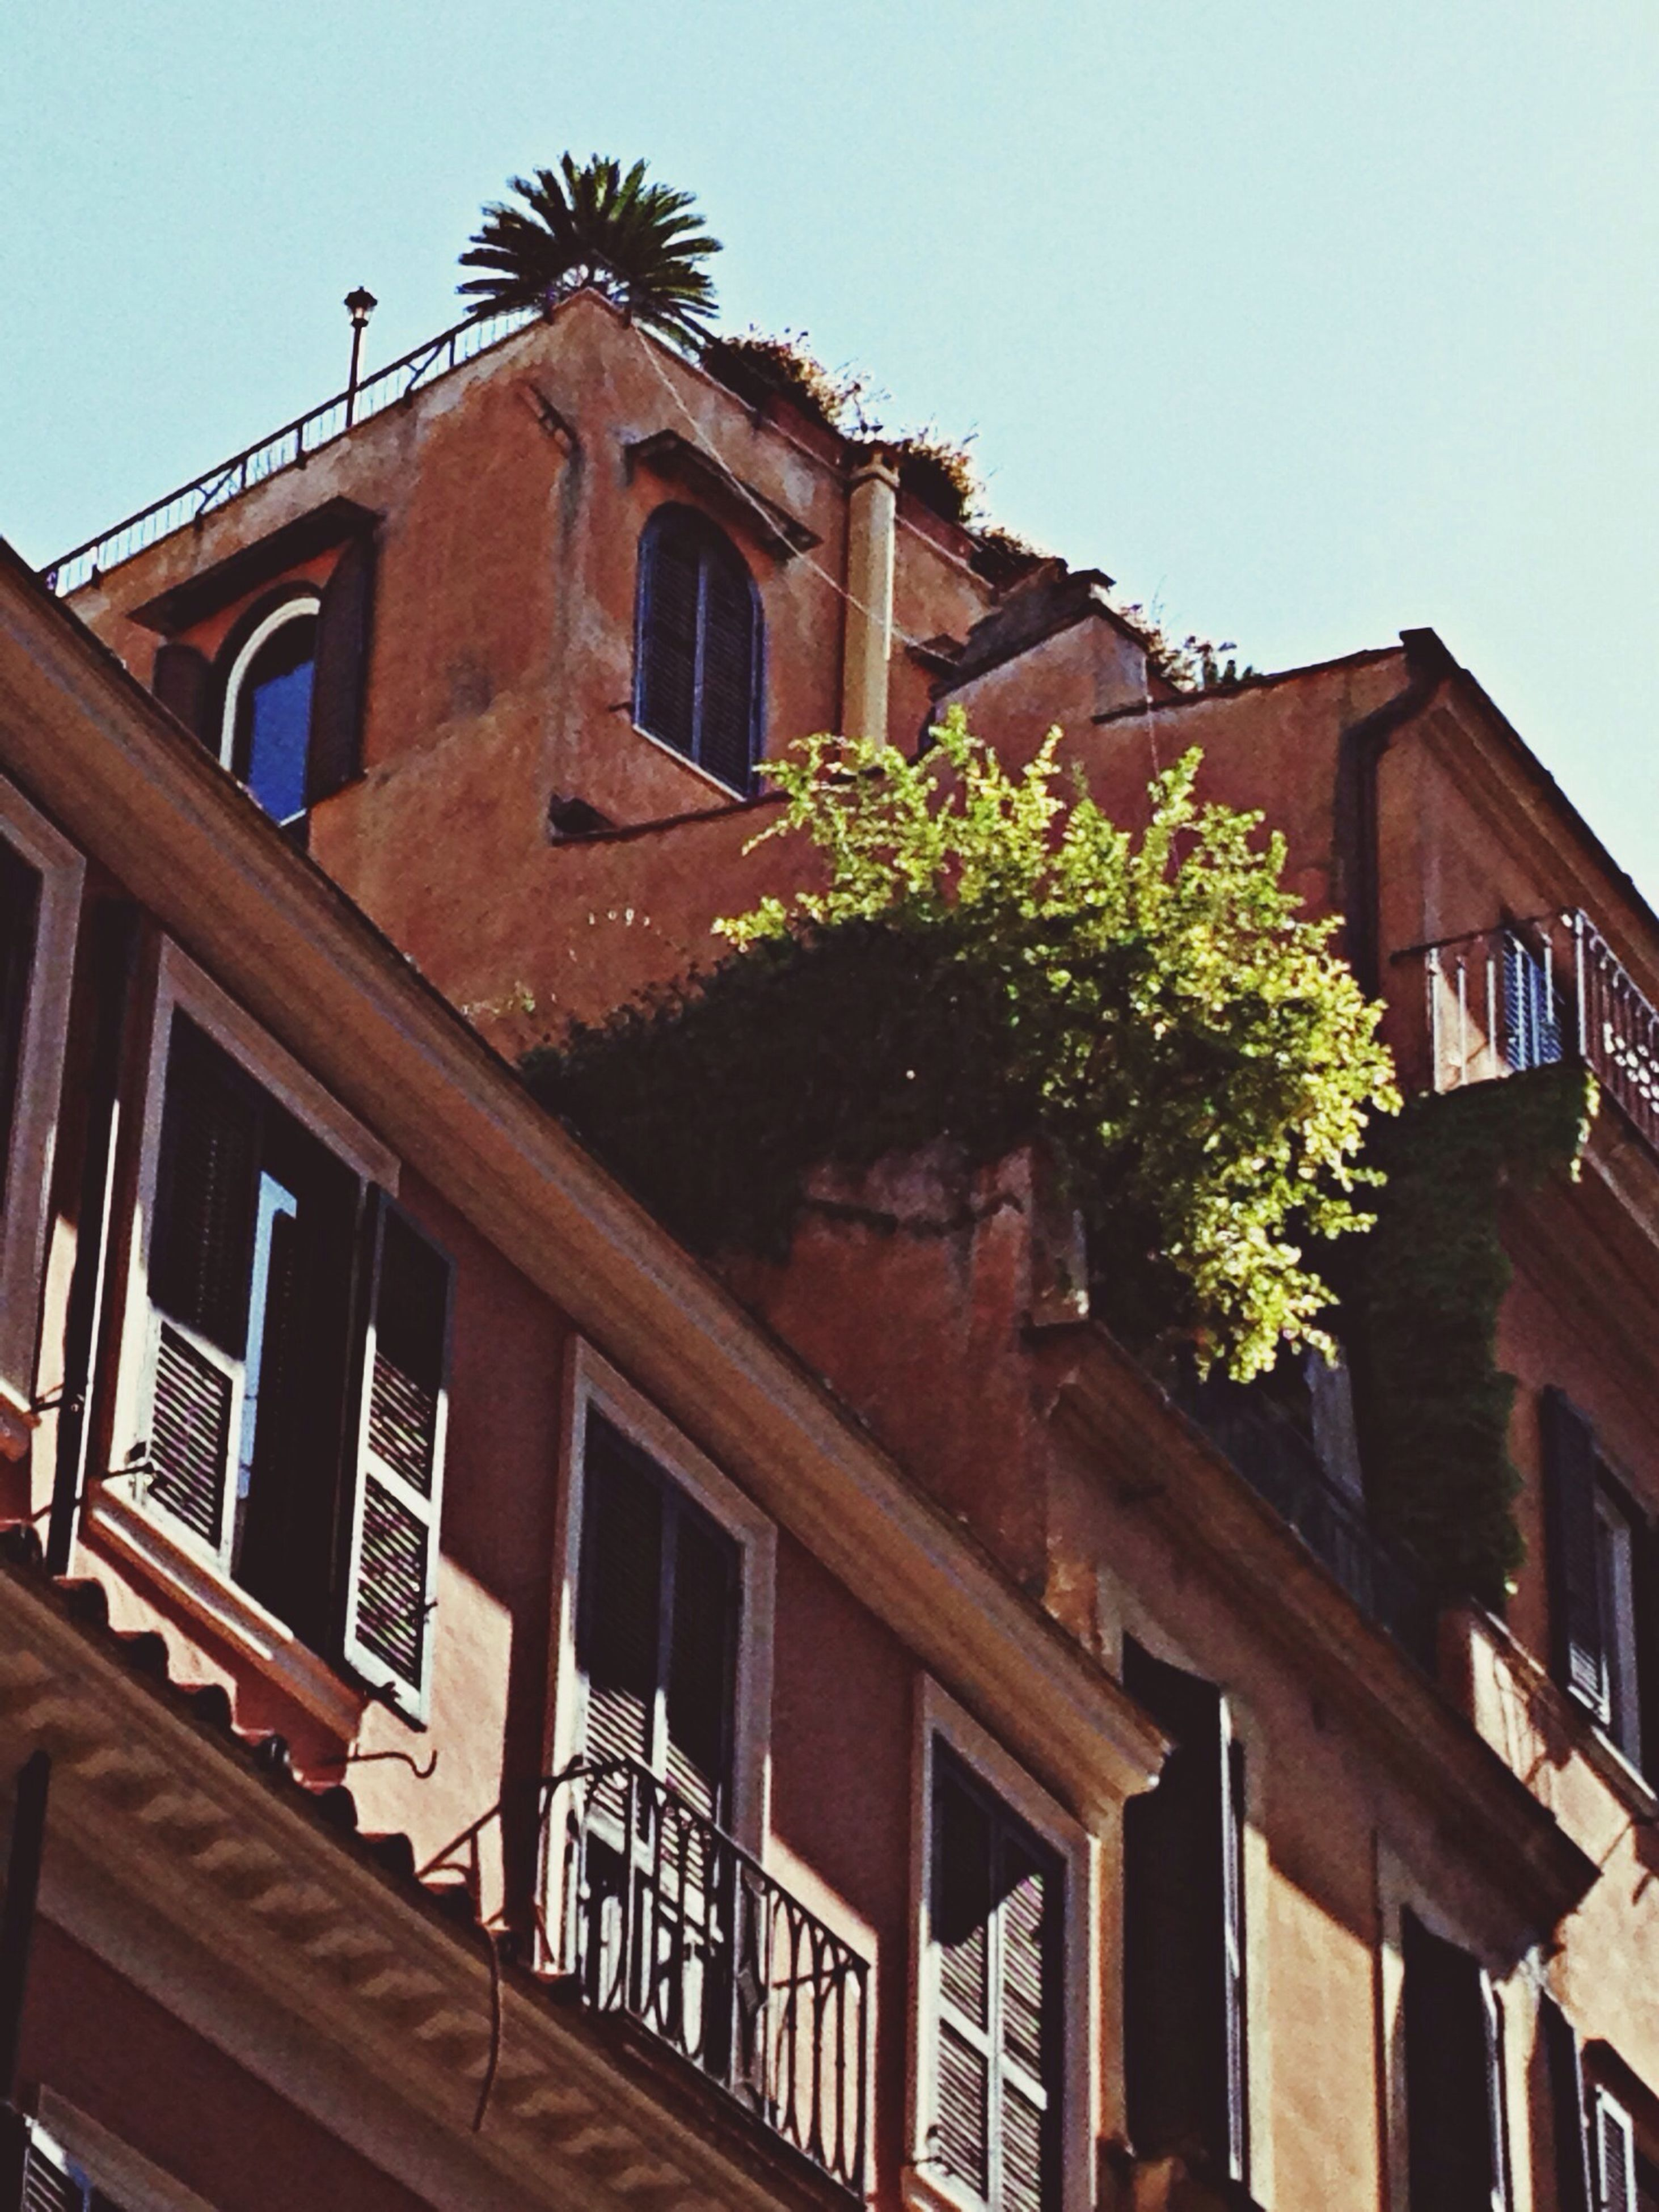 architecture, building exterior, built structure, low angle view, residential building, residential structure, window, house, clear sky, balcony, building, day, roof, outdoors, exterior, sky, no people, tree, facade, city